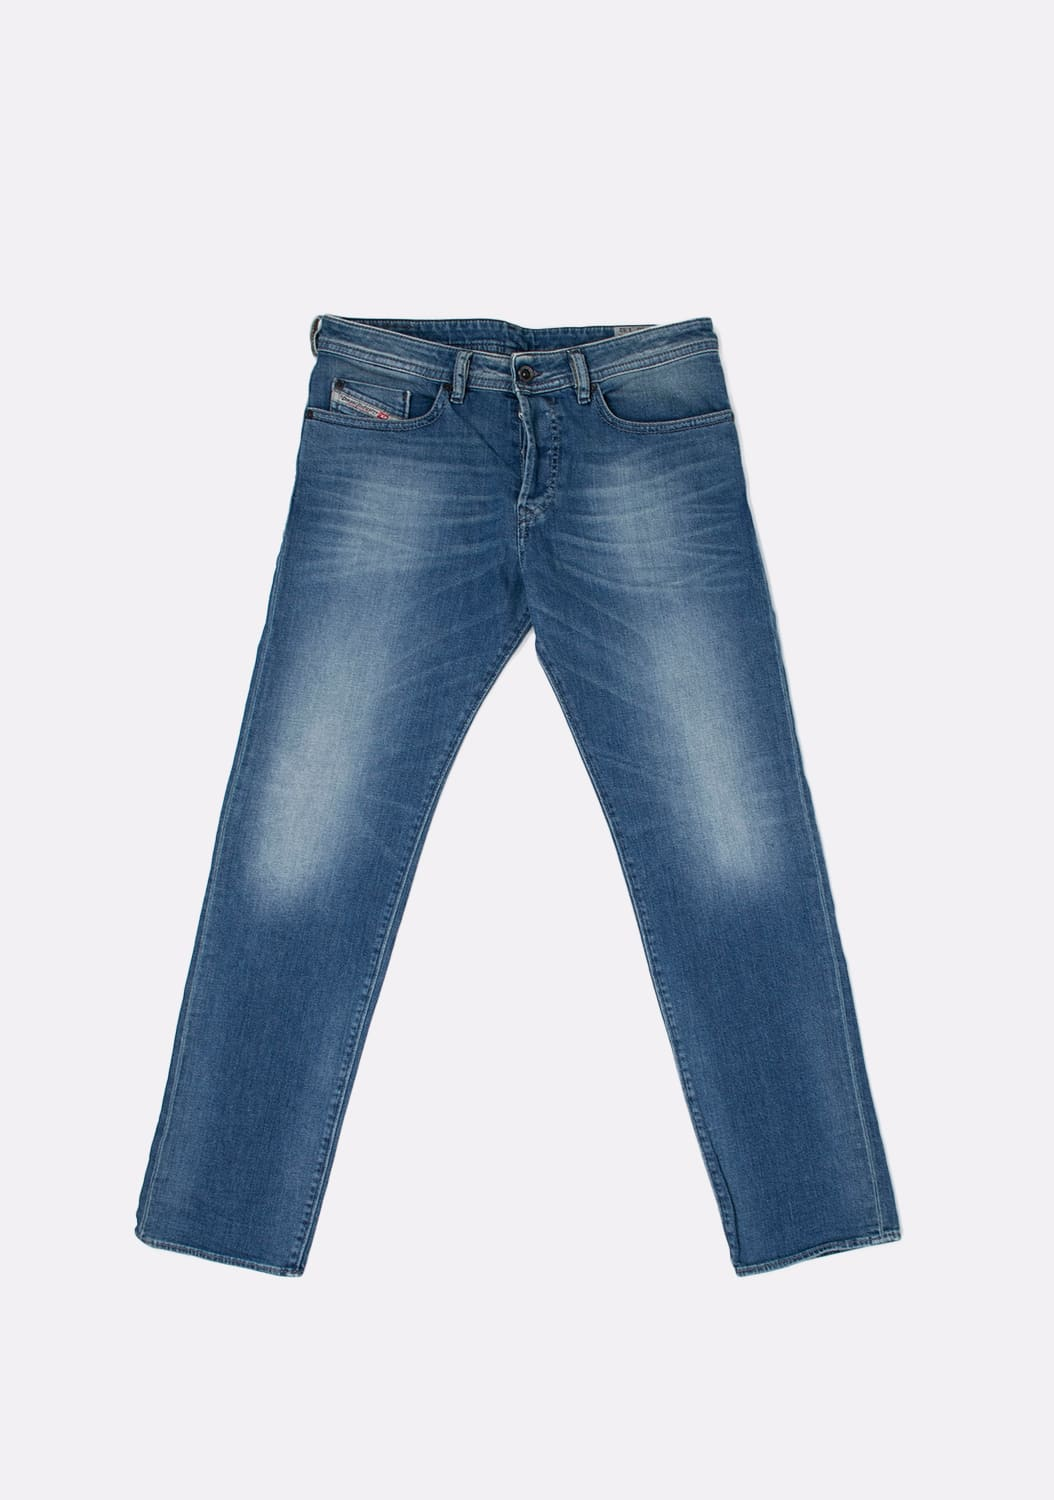 Diesel-Buster-Regular-Slim-Tappered-0669C-Stretch-30-32-melyni-urocklt (2)